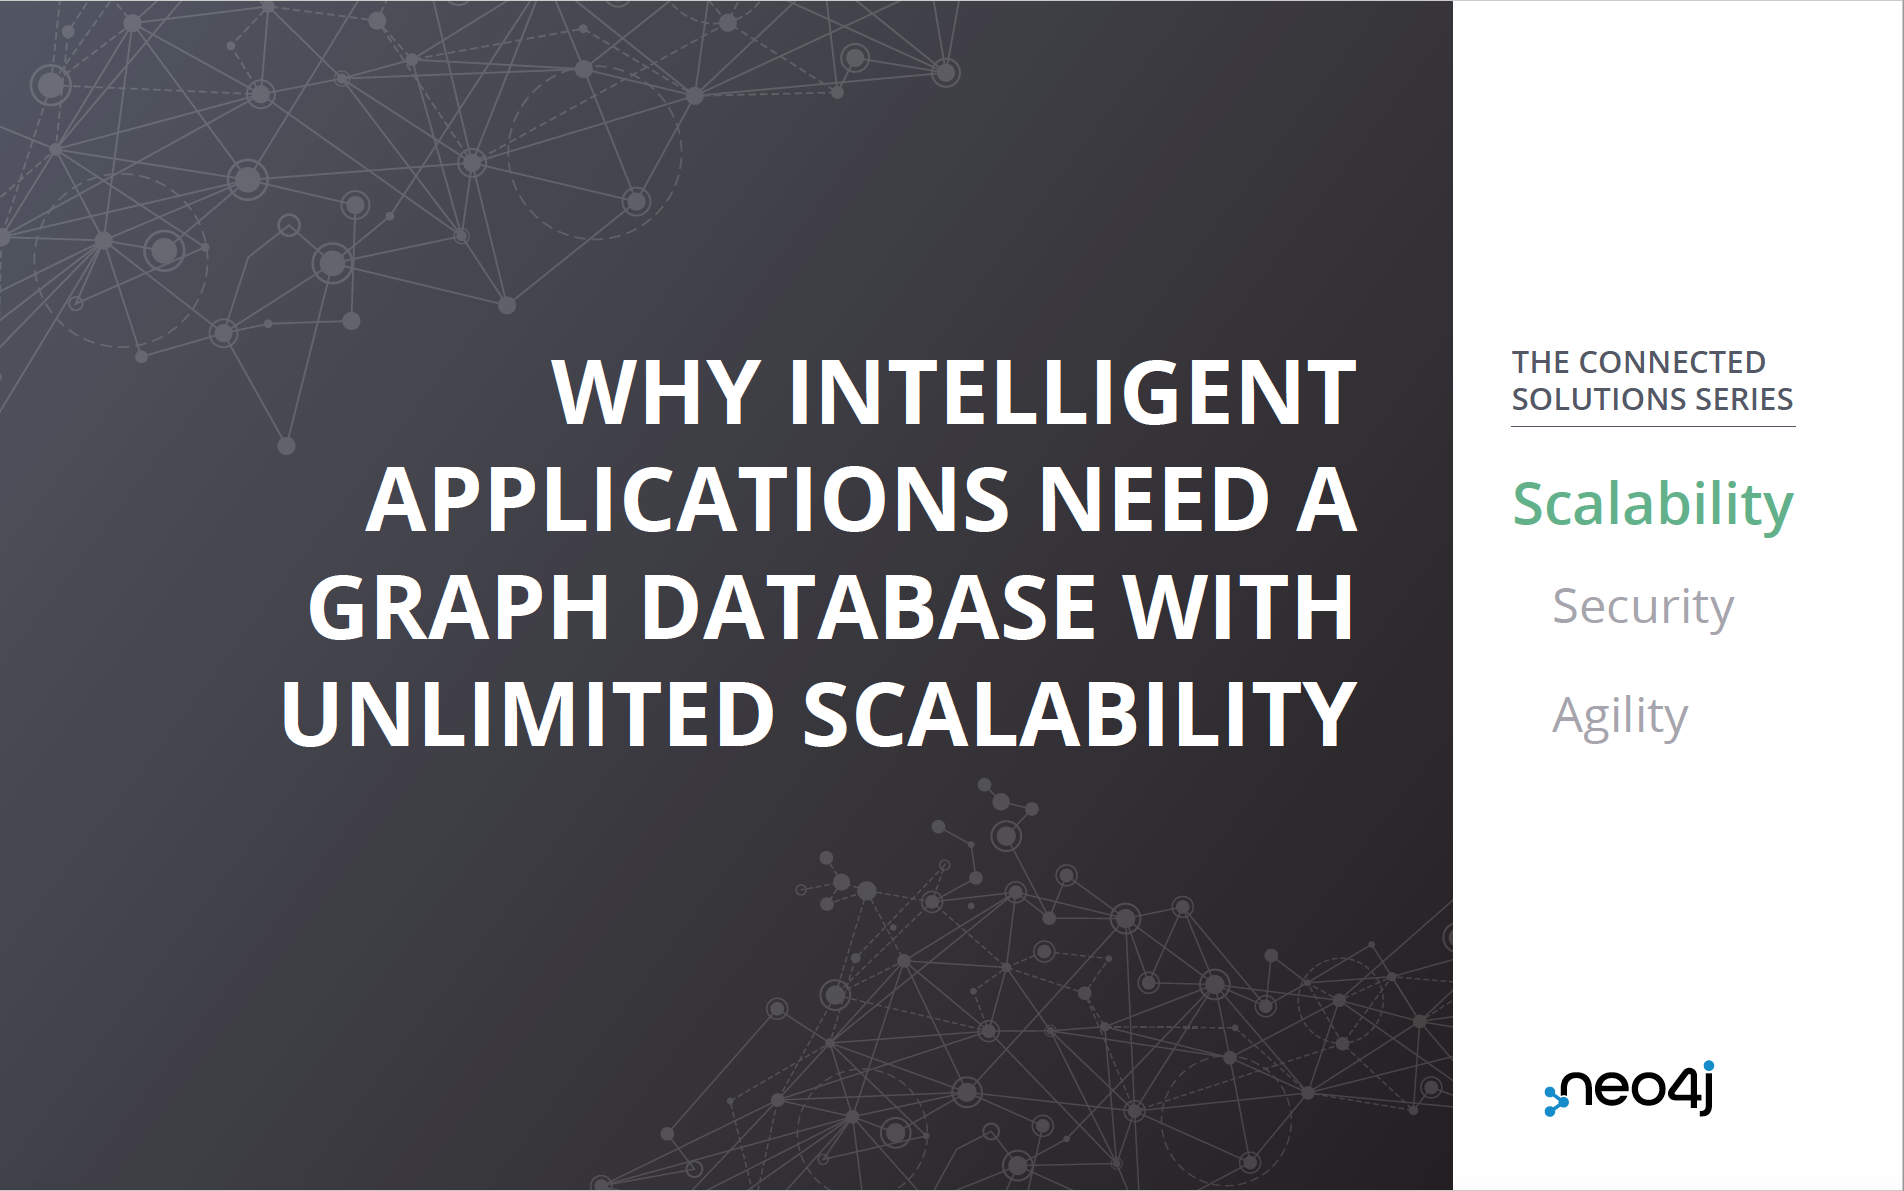 Check out how Neo4j's unlimited scalability enables a breakthrough in your intelligent applications.